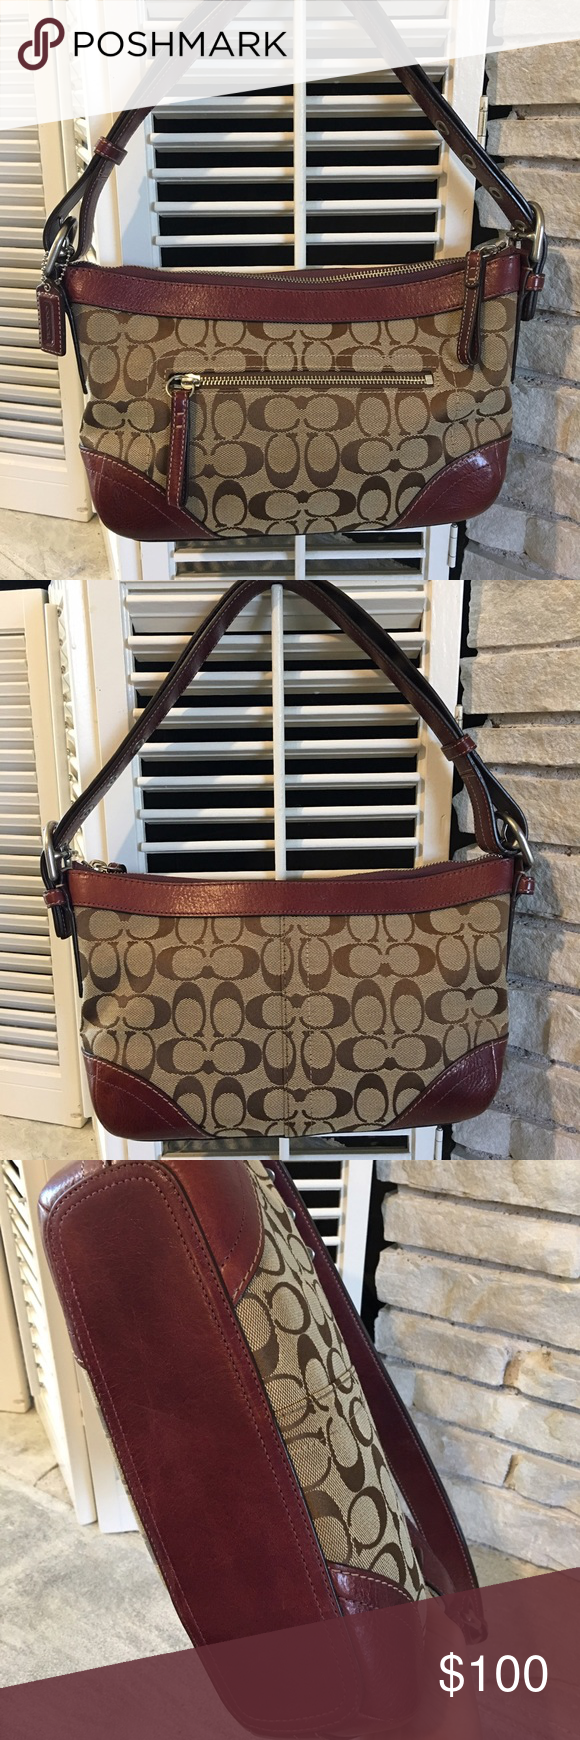 Authentic Coach shoulder bag. This brown and merlot-colored bag is perfect for fall! Almost brand new with no scuffs, no stains. Coach Bags Shoulder Bags